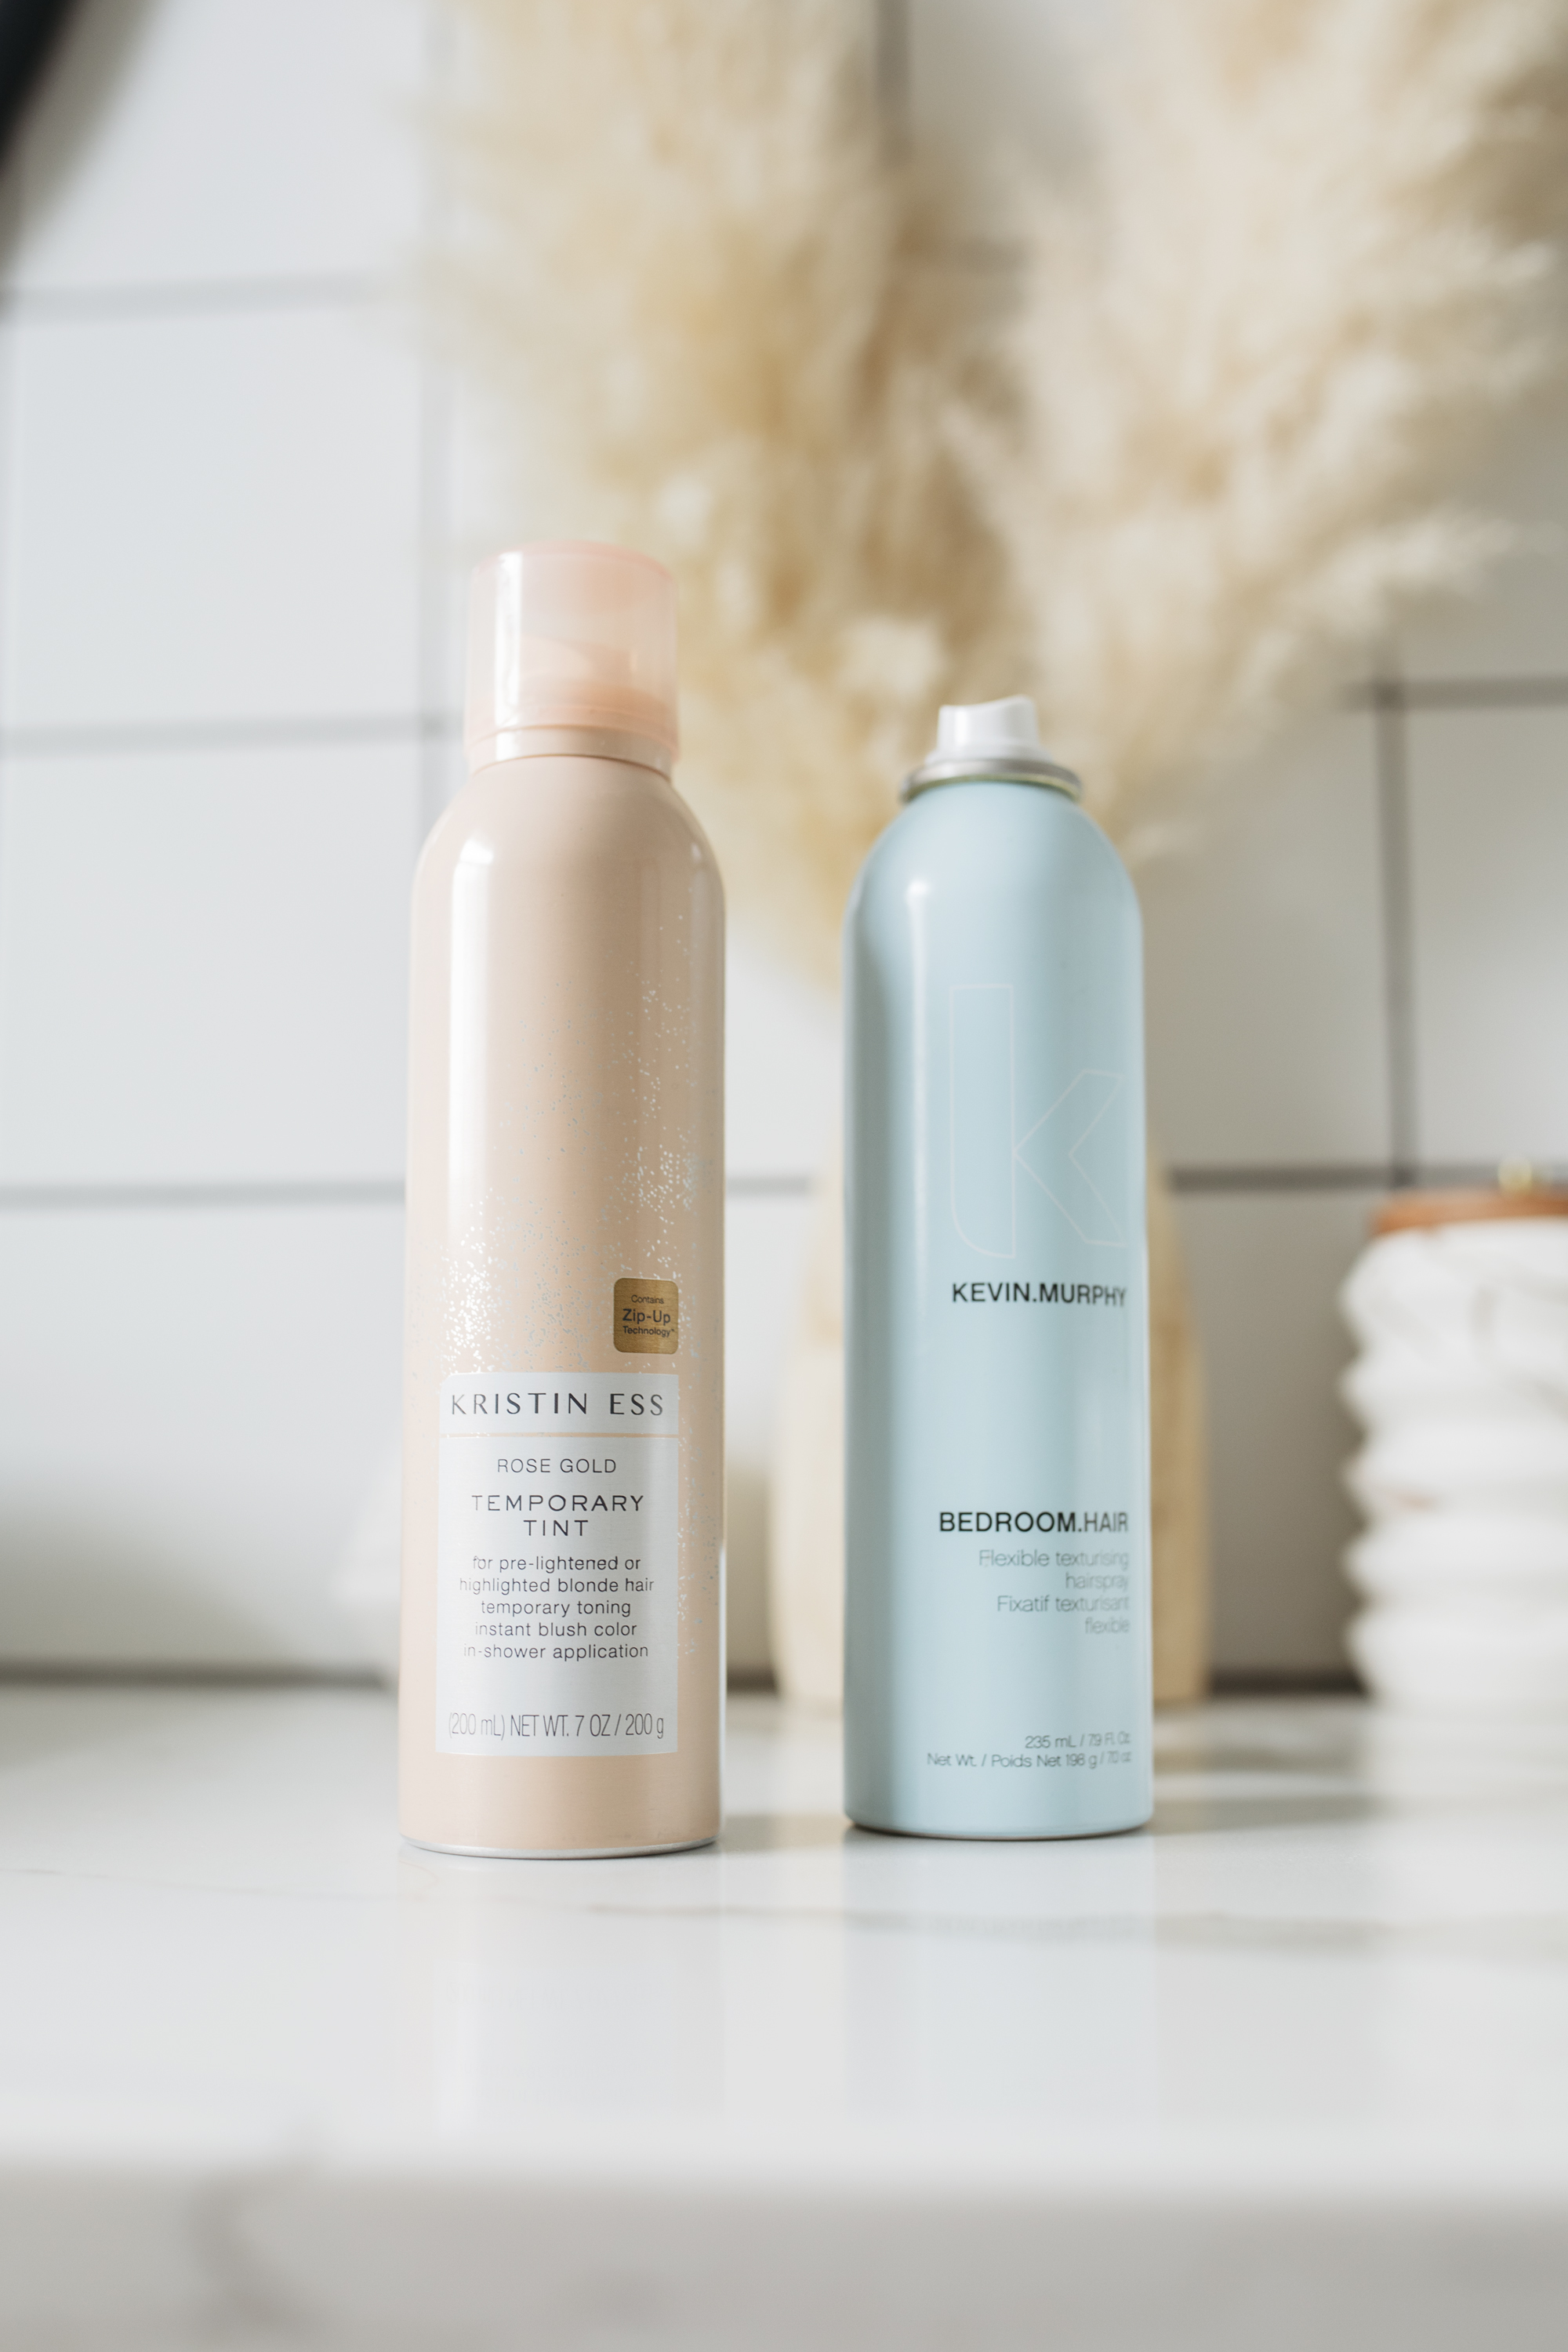 These are some of my favorite products for colored hair. They help your hair maintain it's rose gold color and shine through the week